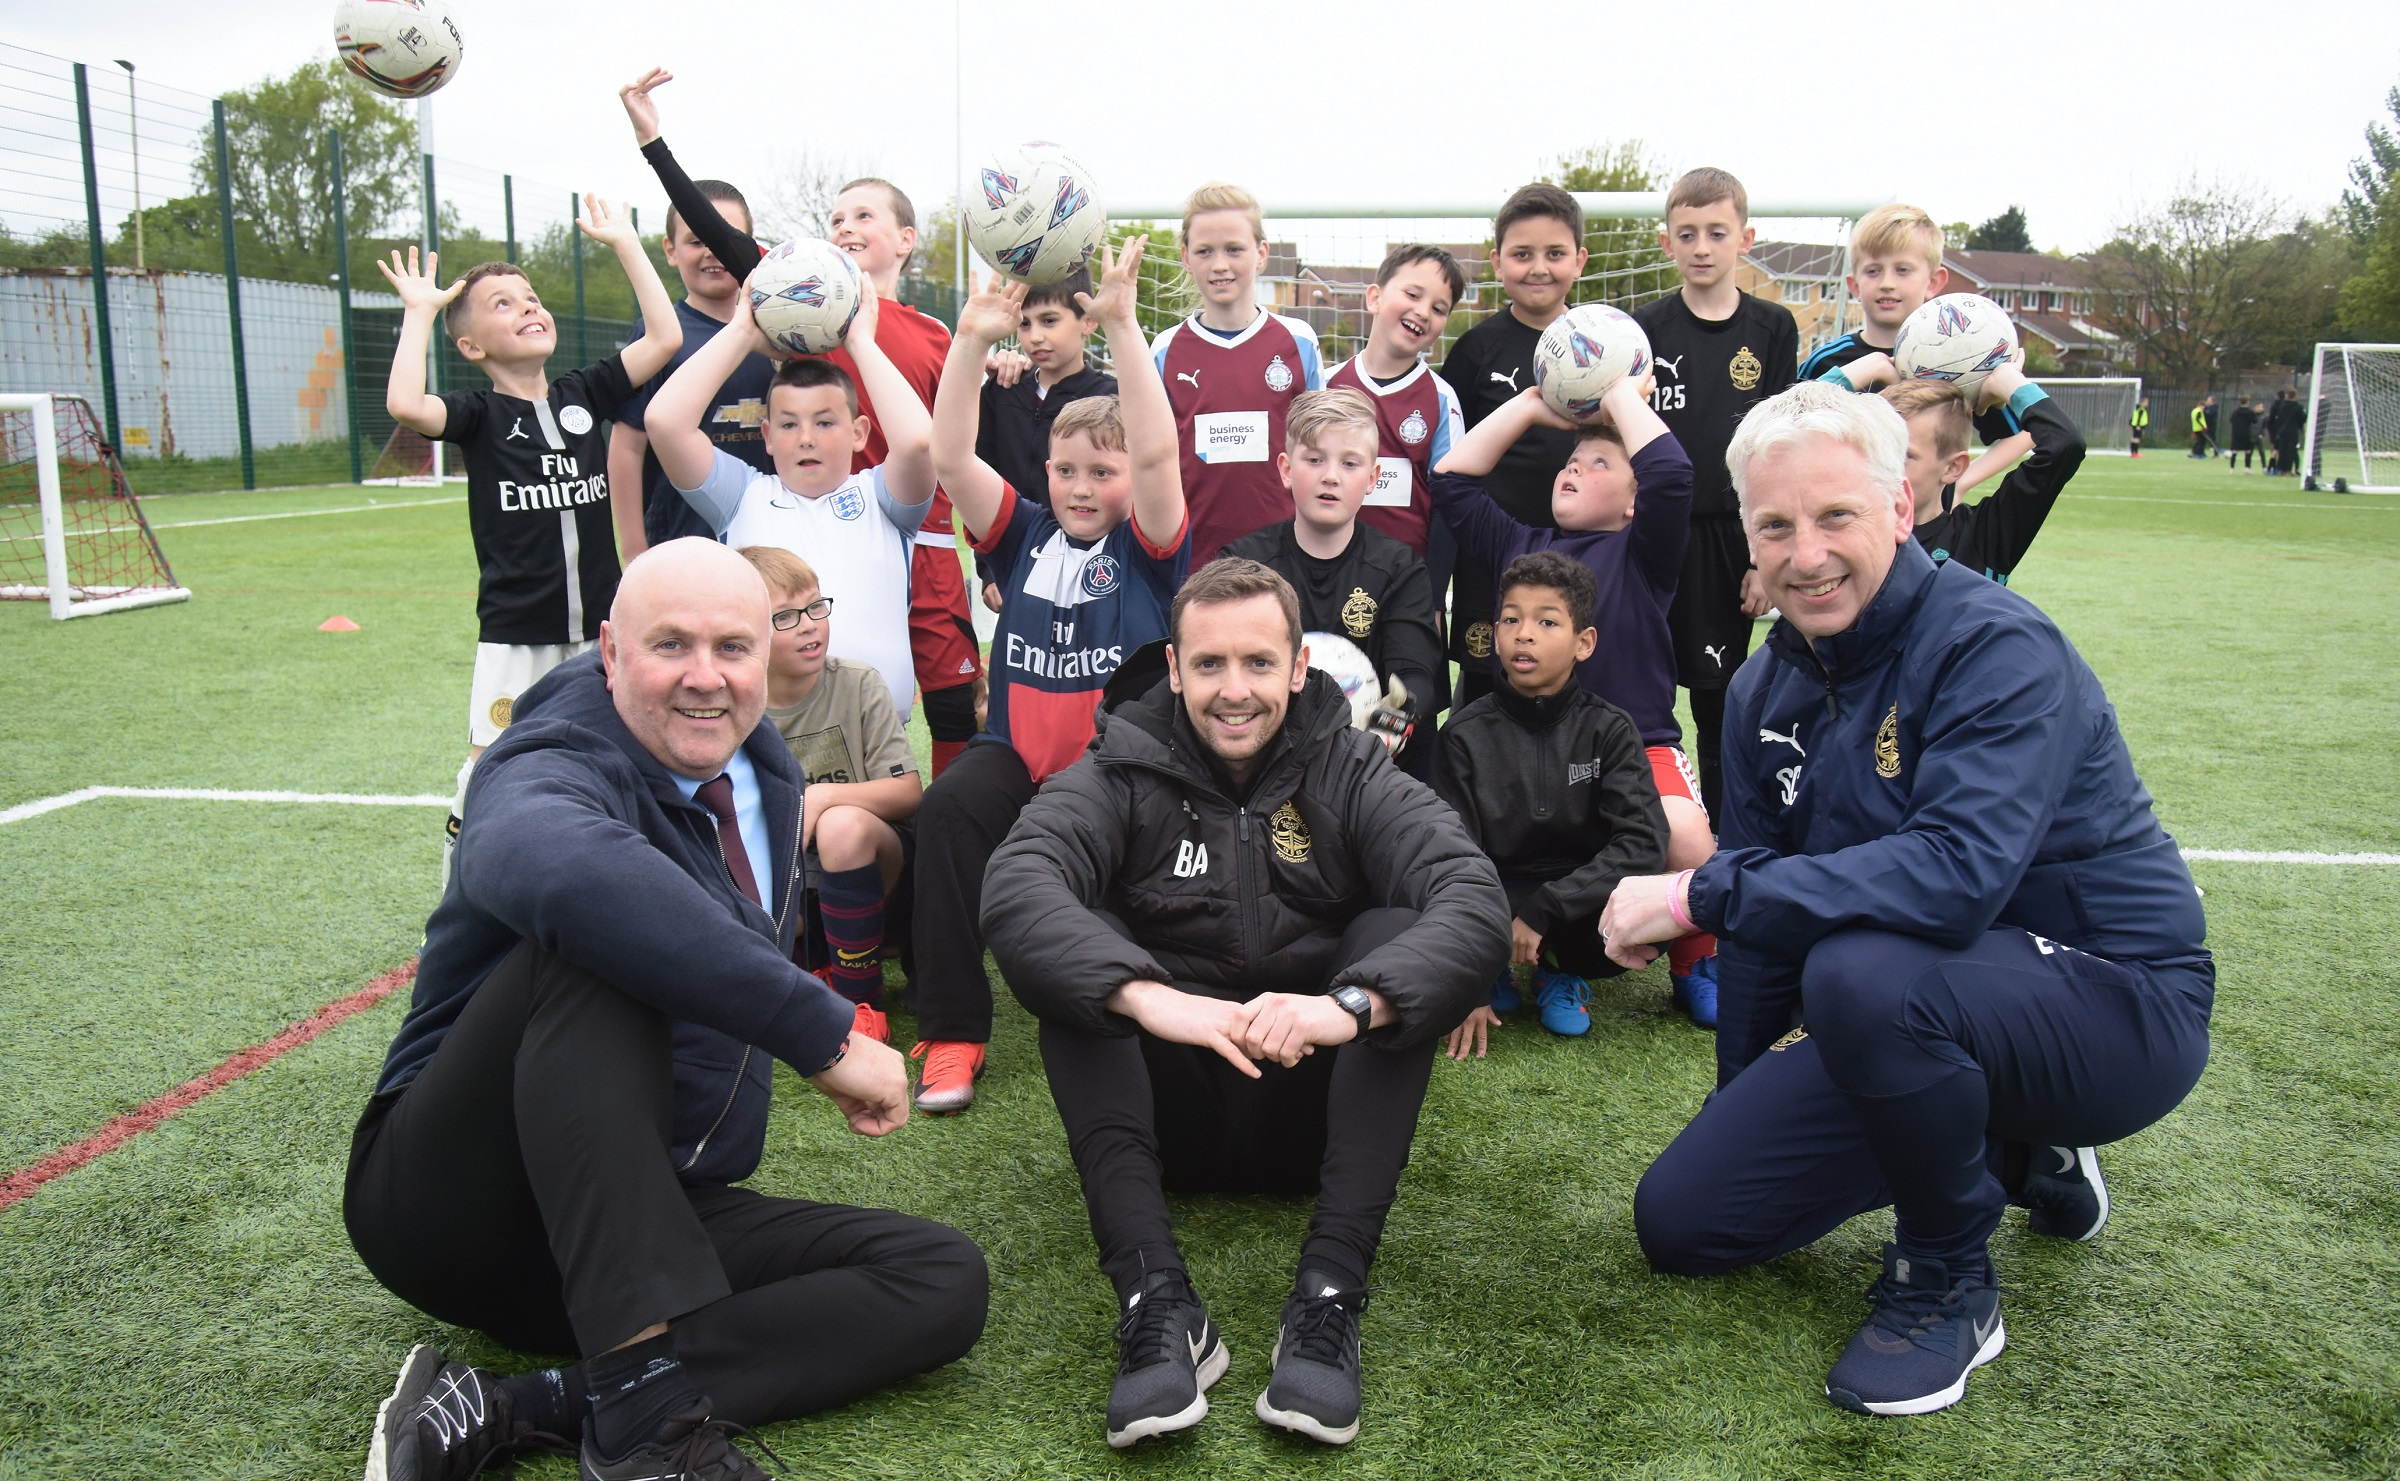 SSFC Foundation health and well-being programme given major boost by Port of Tyne